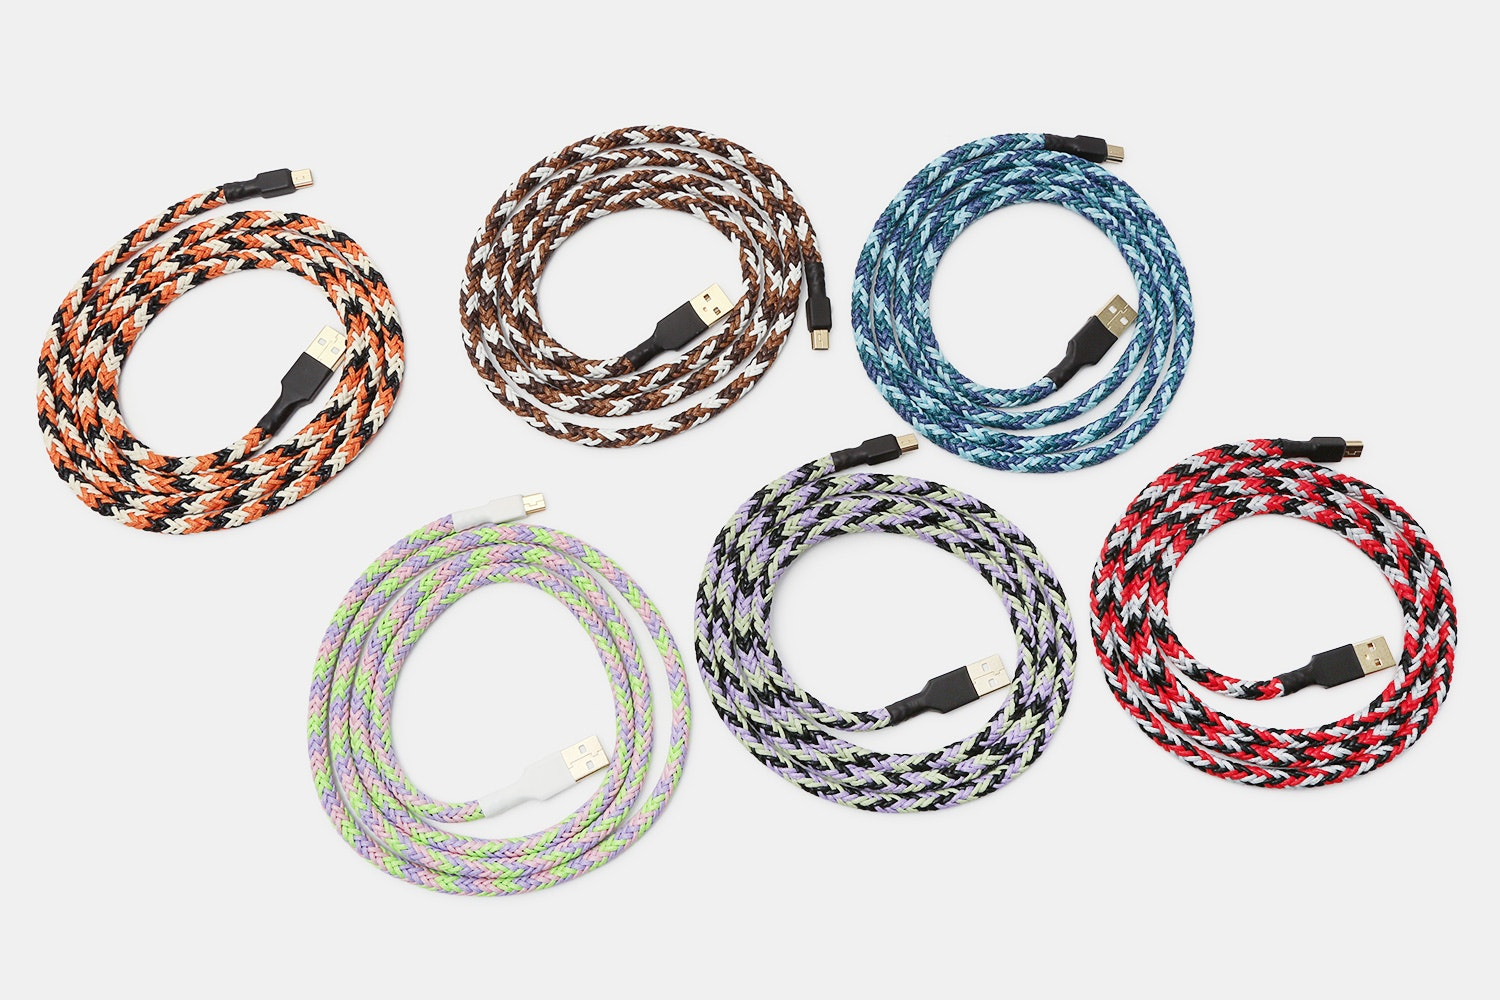 Tri-Colored Themed Braided Nylon USB Cable